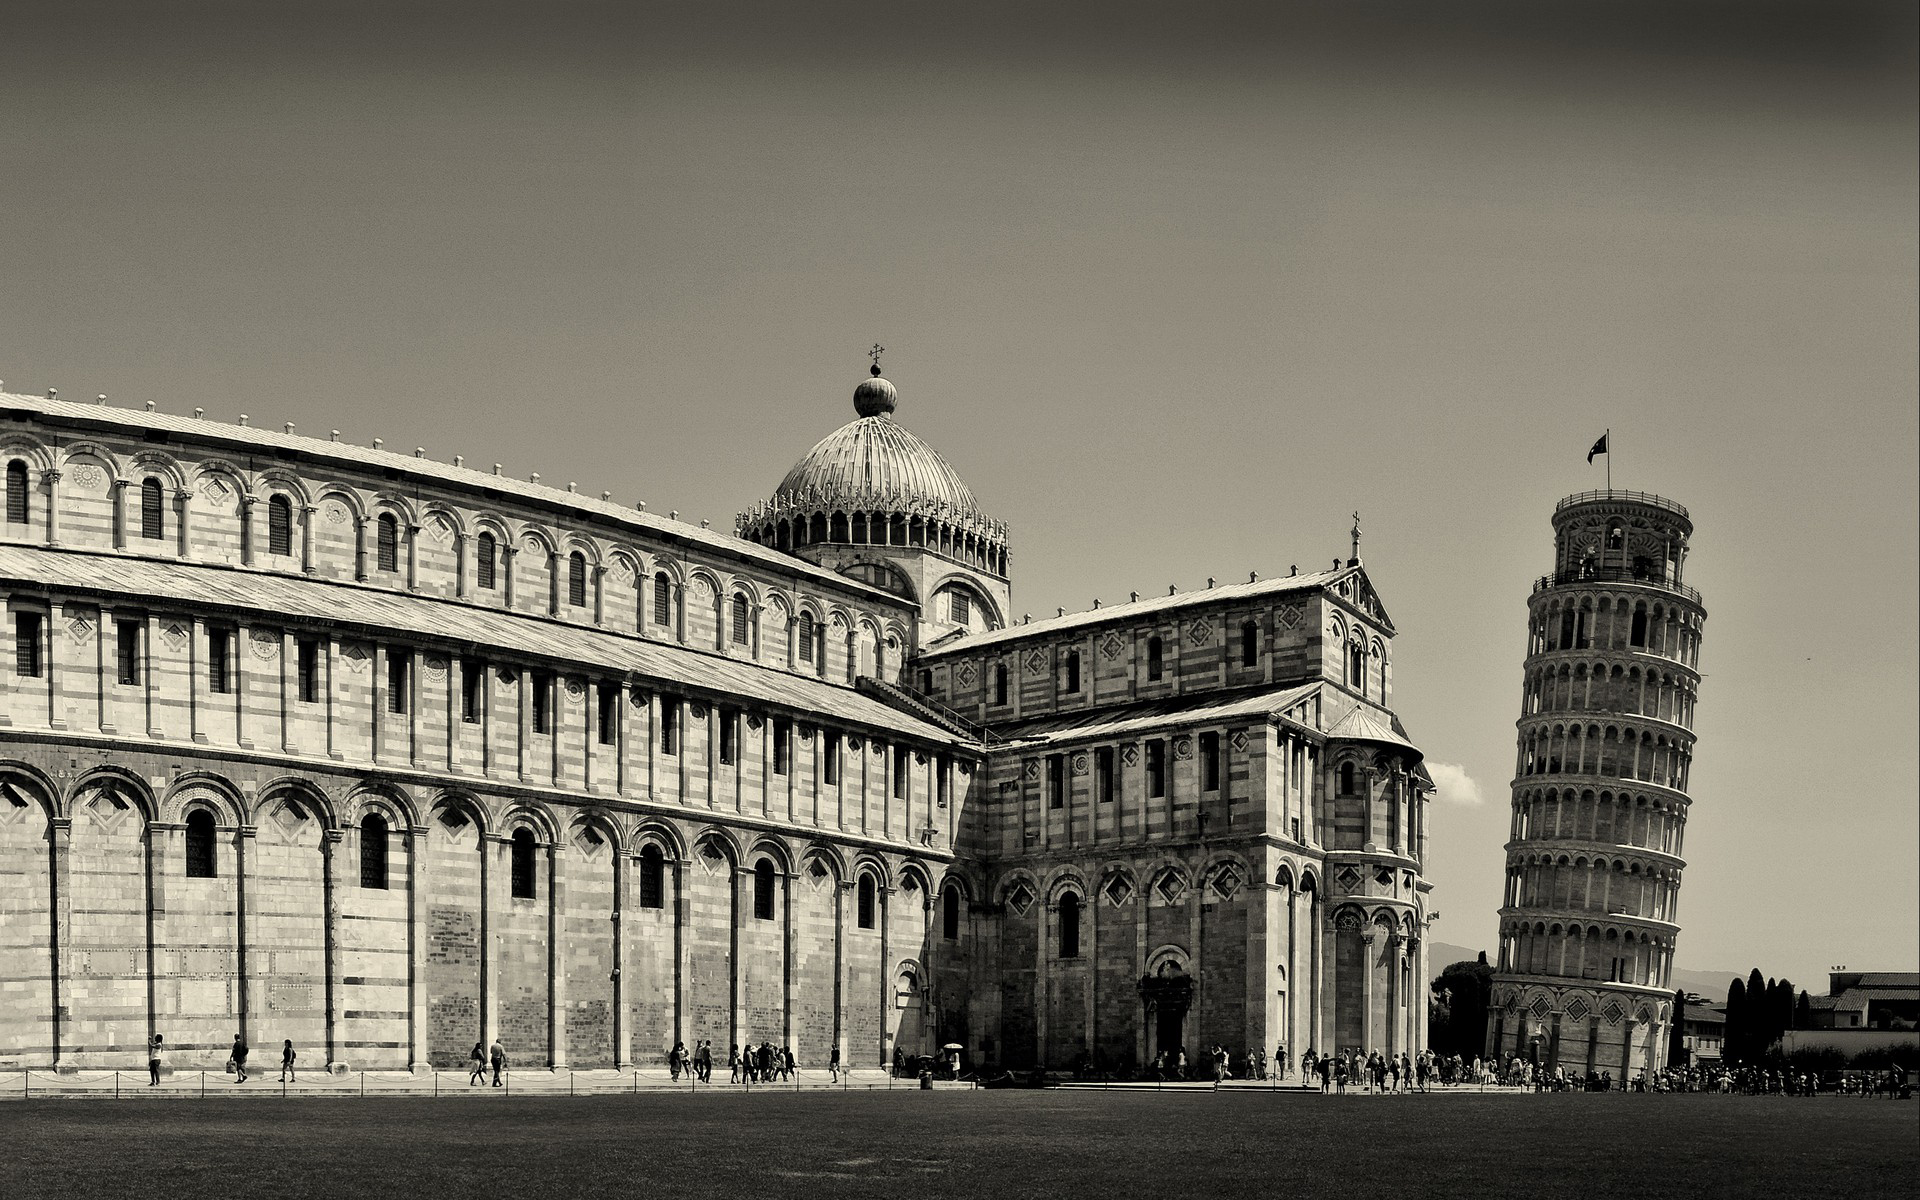 Leaning Tower of Pisa Italy Black and White HD Wallpapers Widescreen